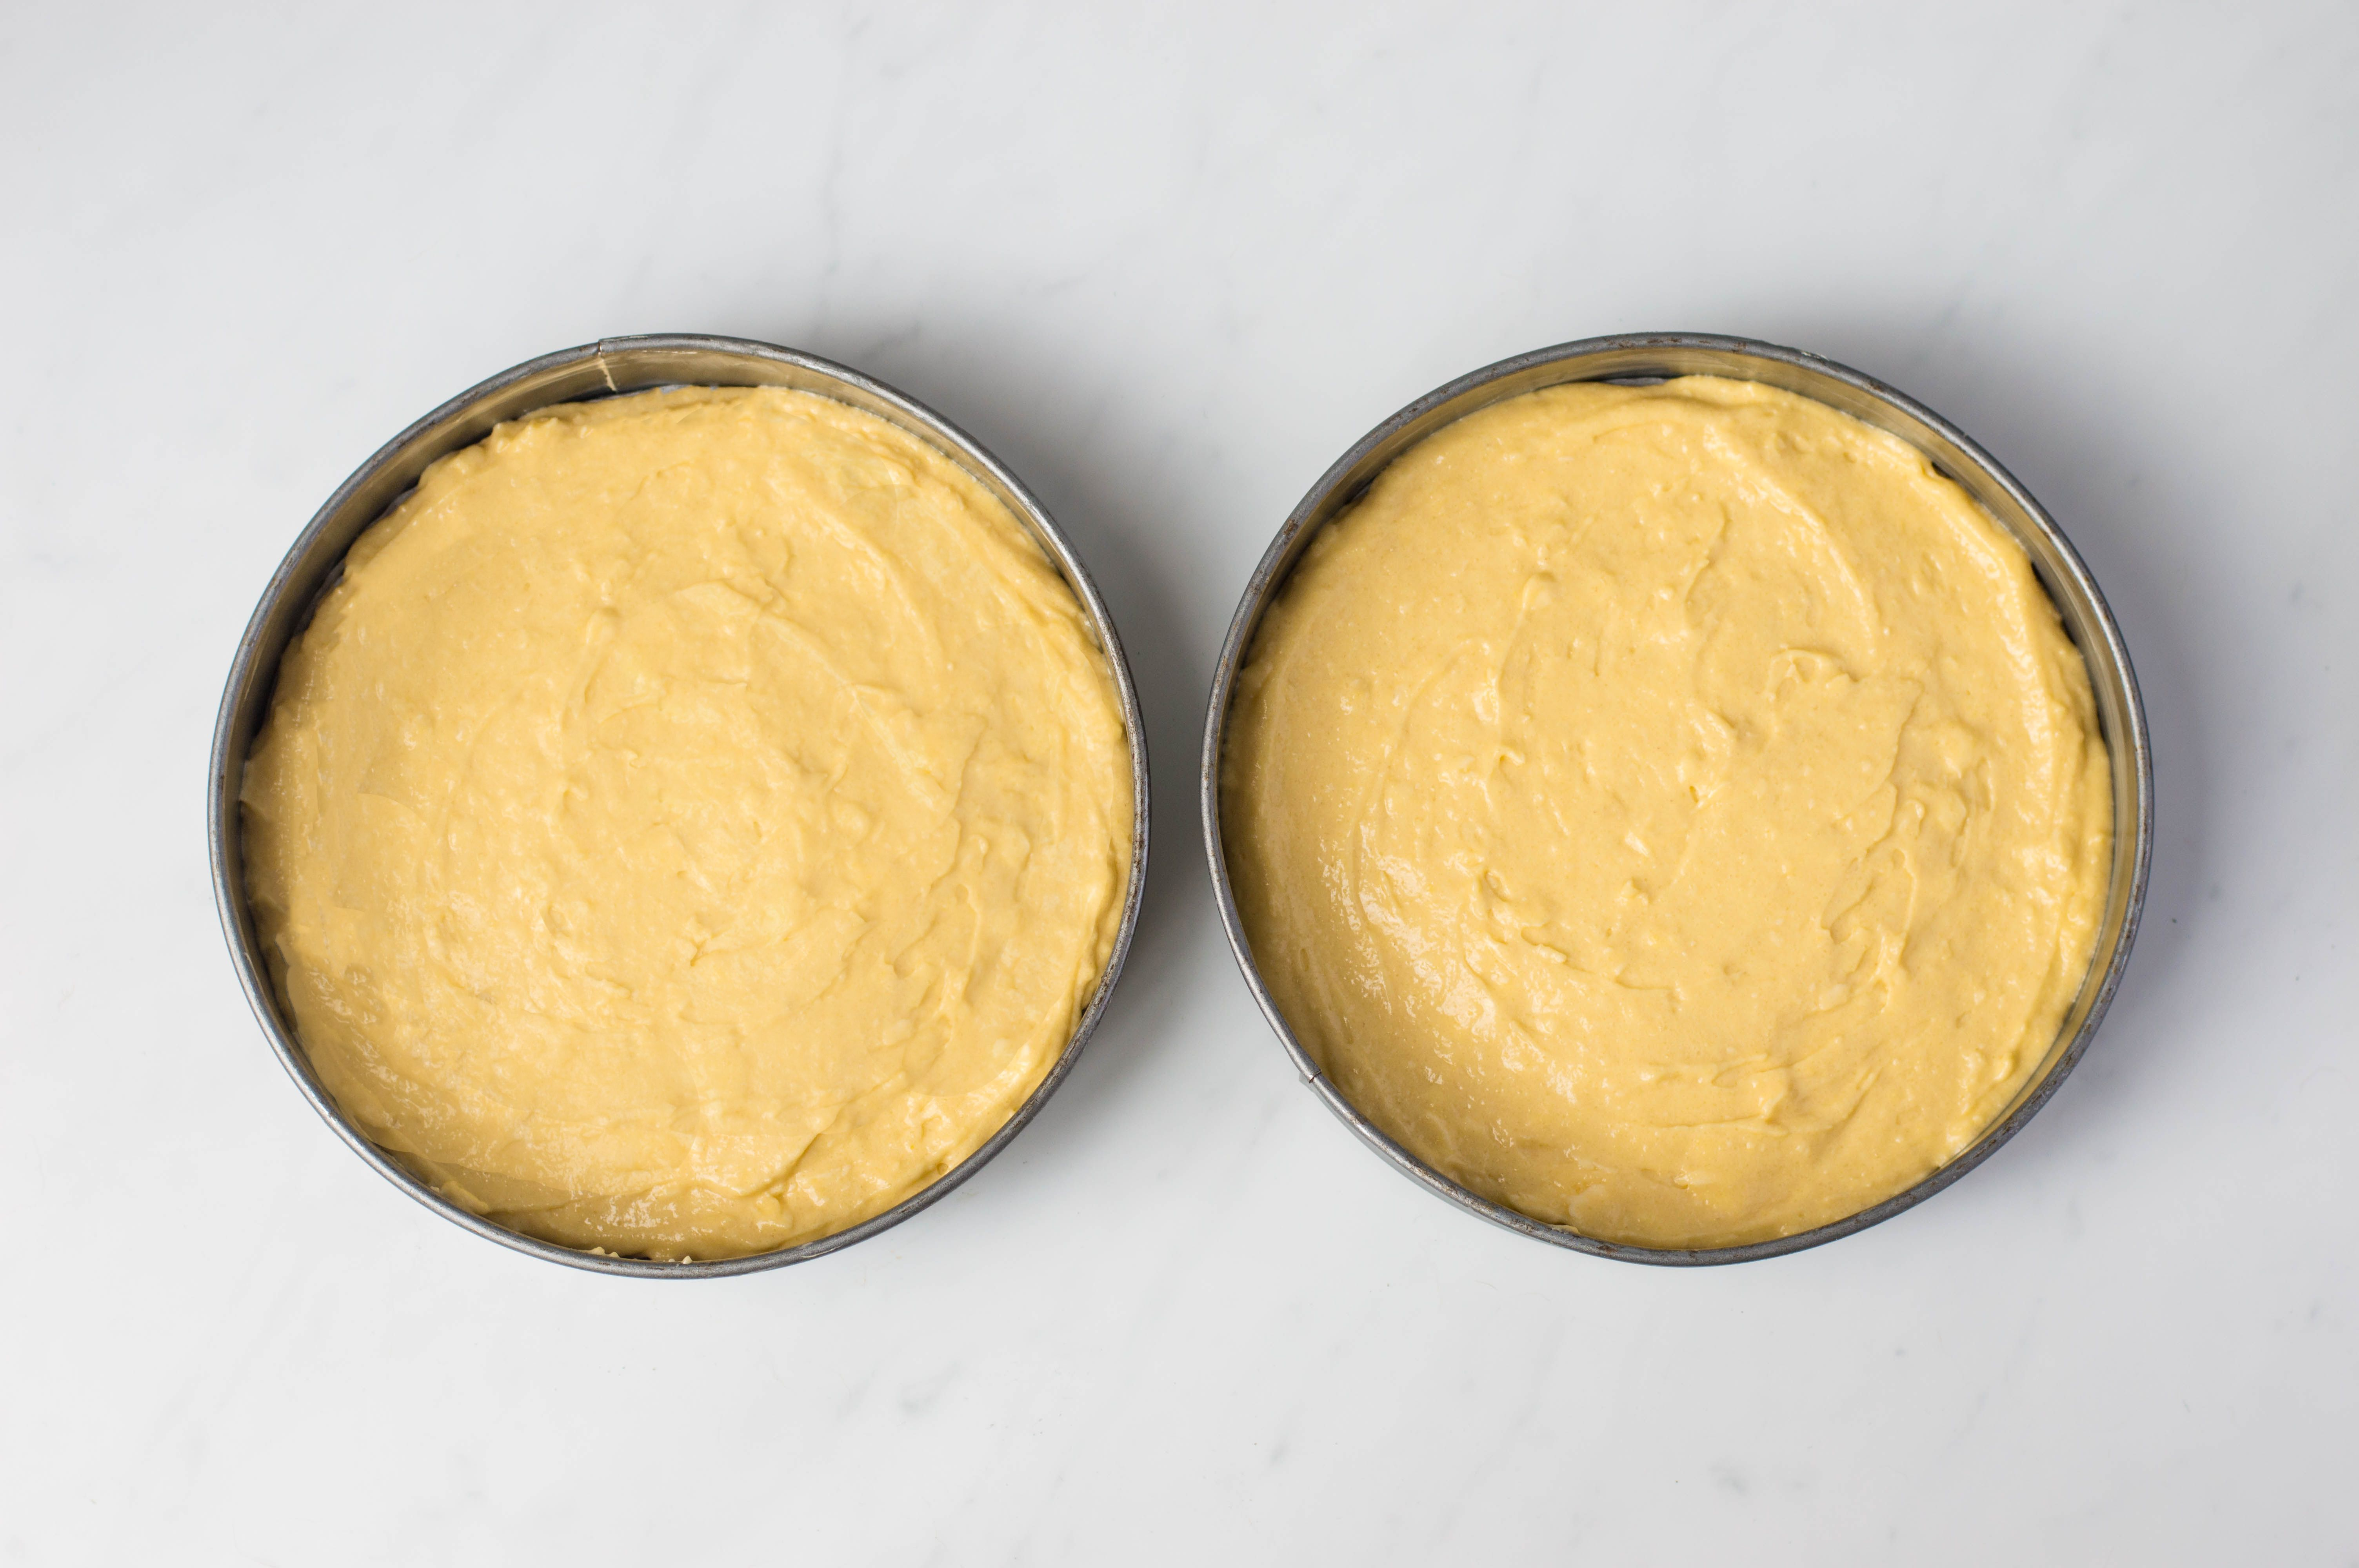 Batter evenly separated into two cake pans